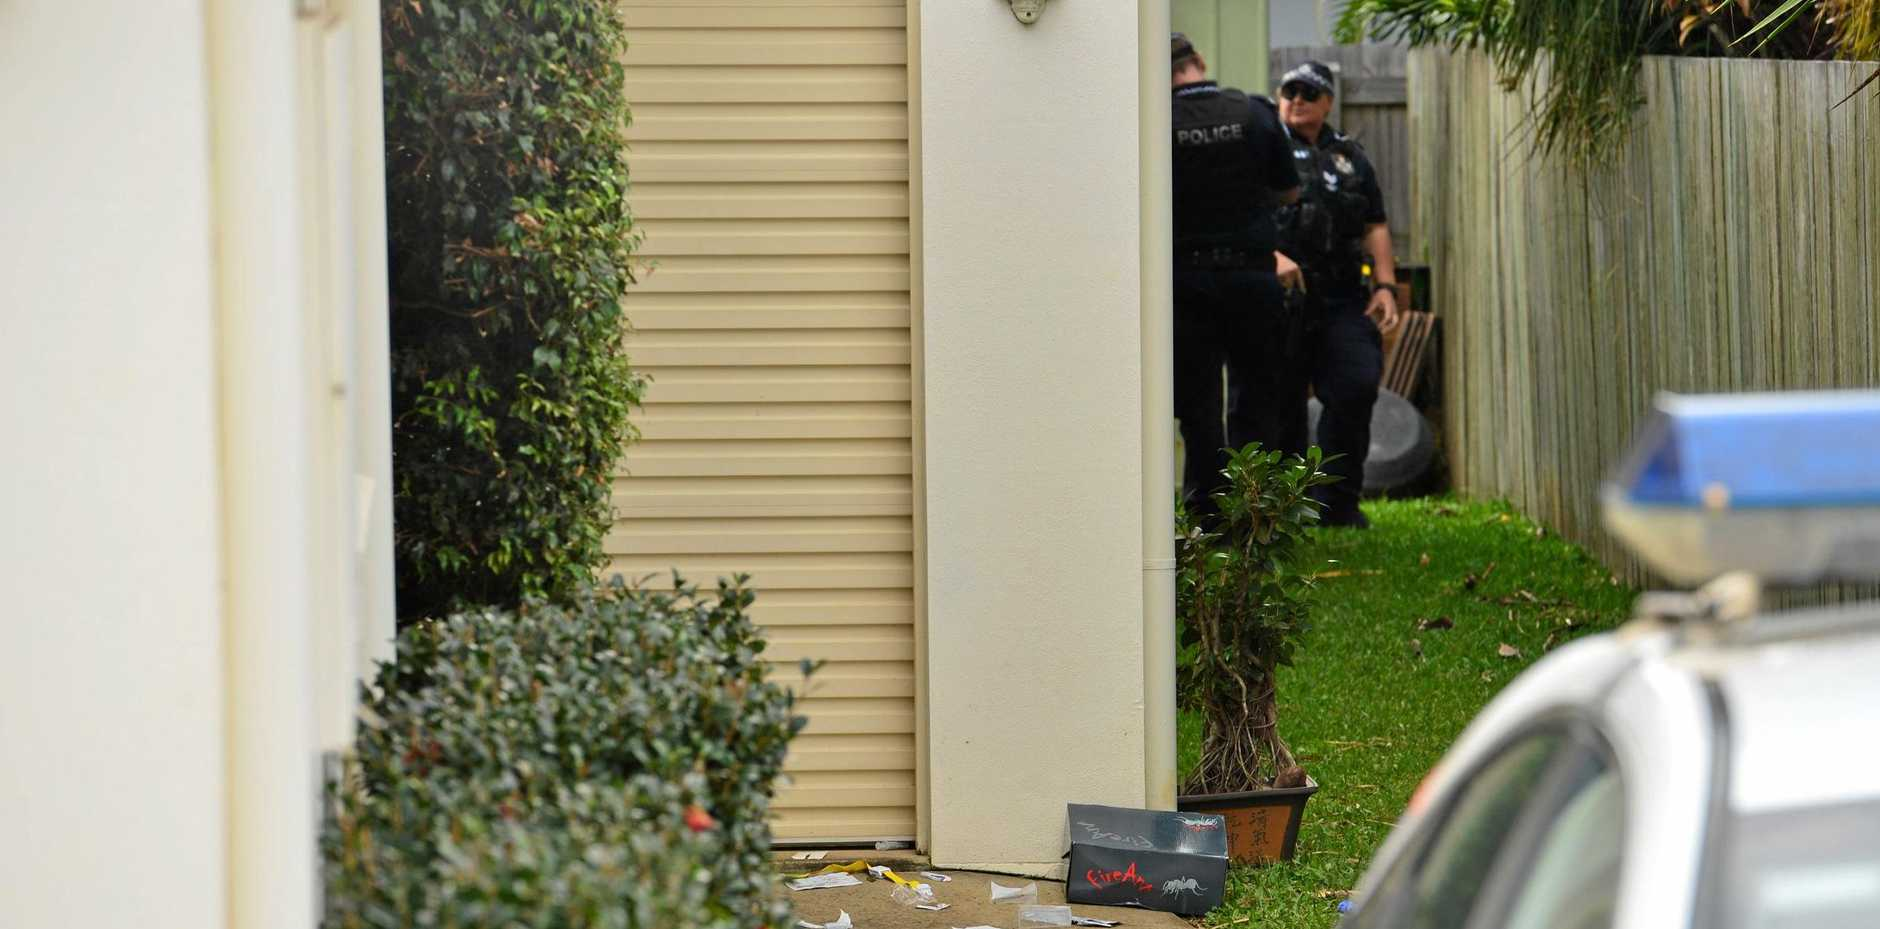 Hamilton Street in Buderim was the scene of pandemonium when a man was allegedly stabbed to death.